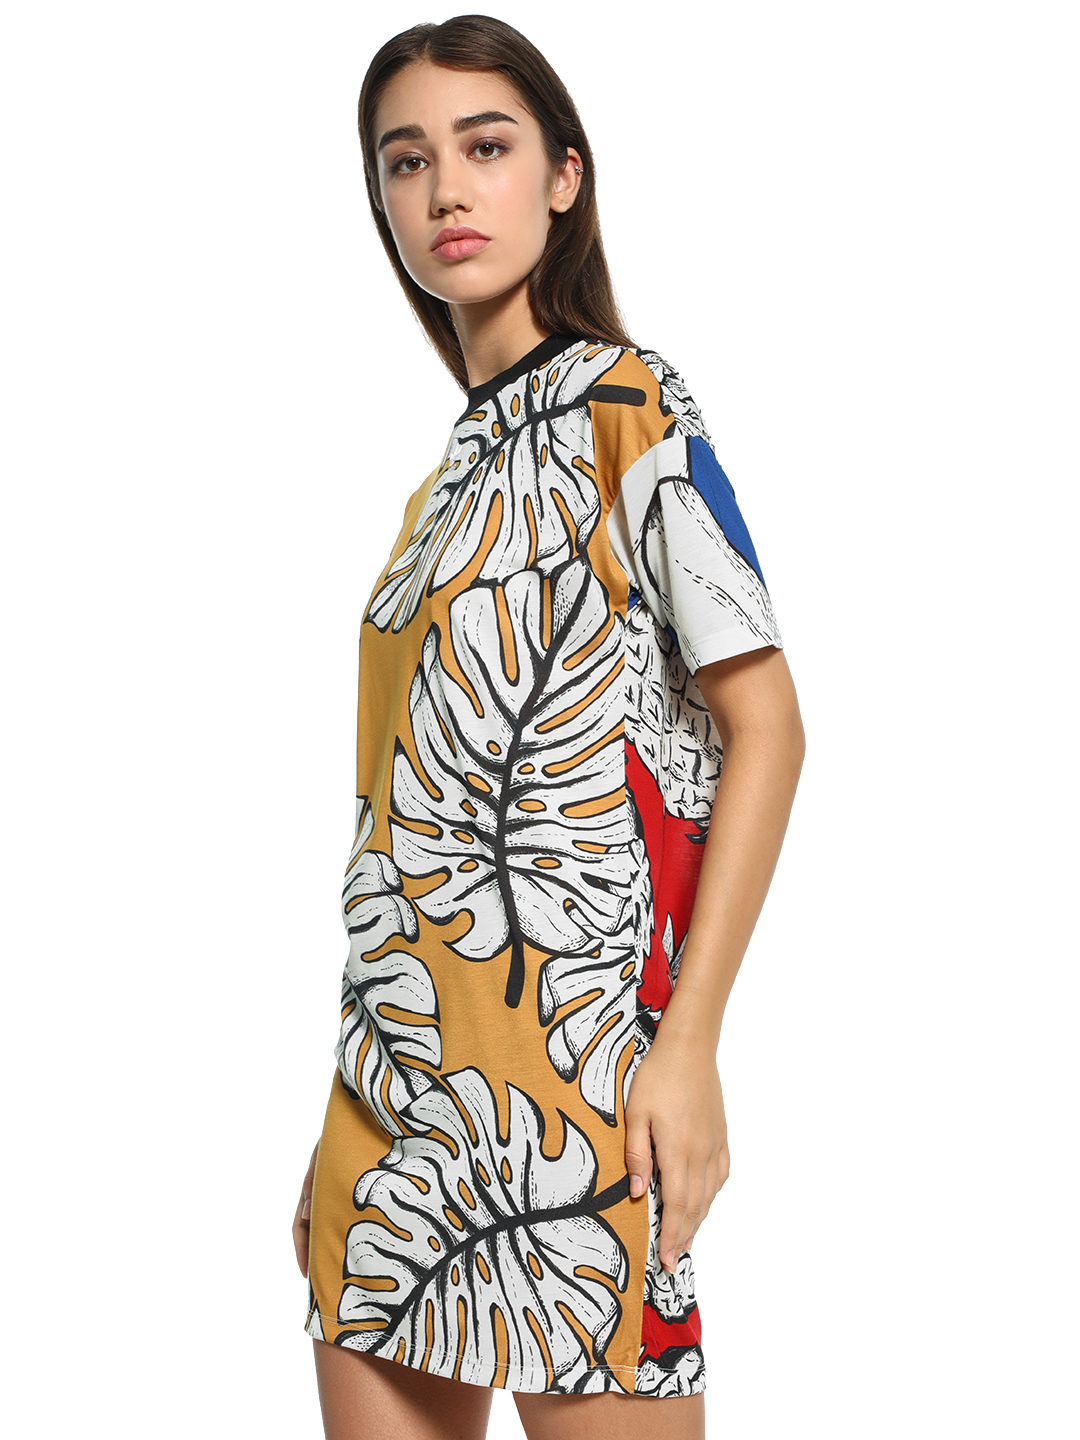 Adidas Originals Multi Tropical Pineapple Print T-Shirt Dress 1